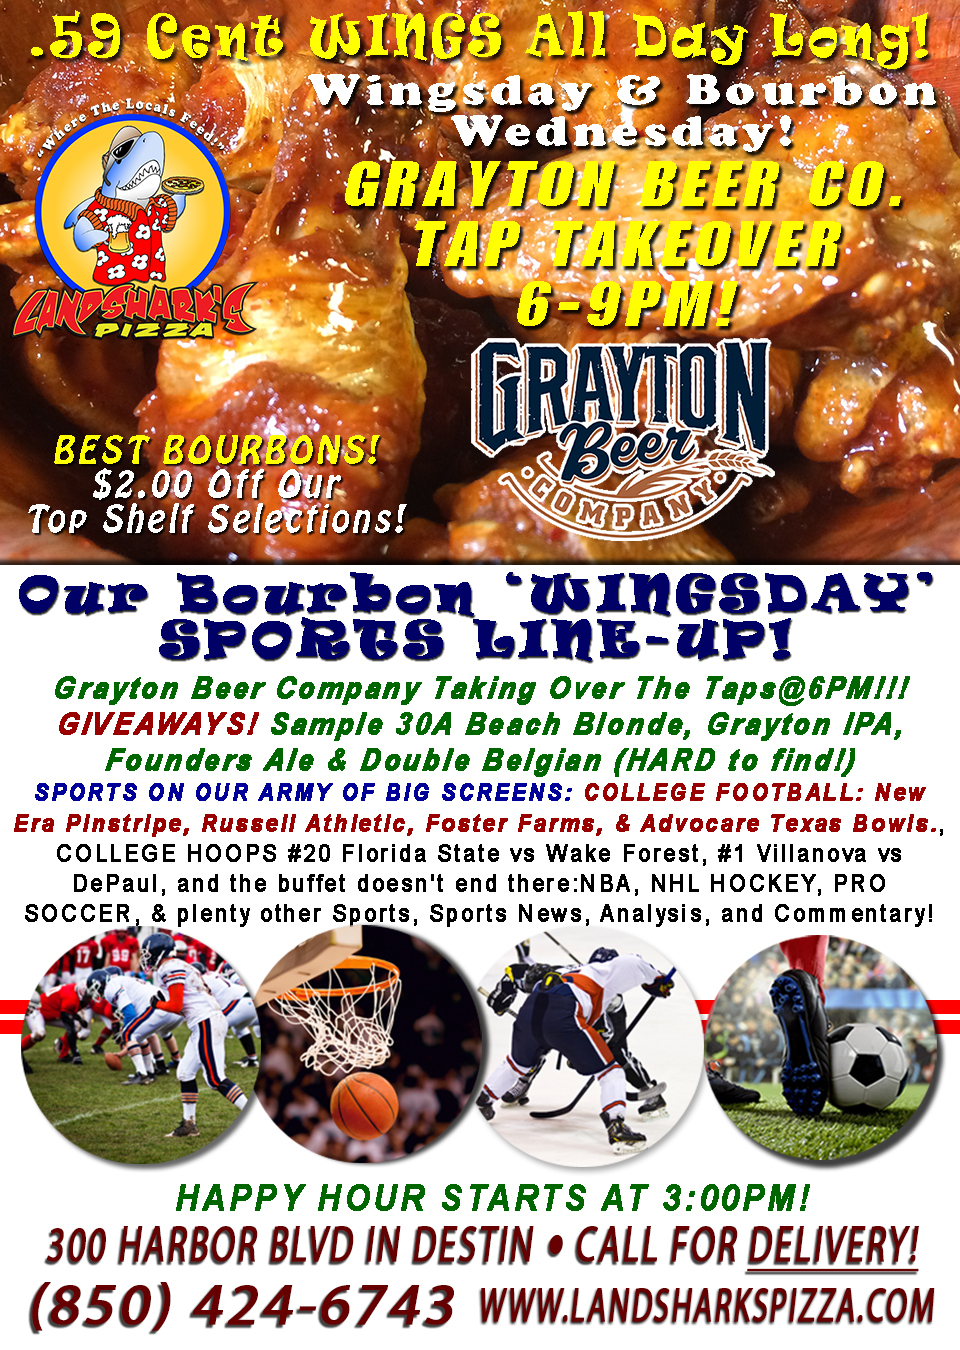 GRAYTON BEER CO. TAP TAKEOVER TODAY@6PM 4 BOWL GAMES, Wings 59¢ Ea. ALL DAY $2 OFF BEST BOURBONS in Town!